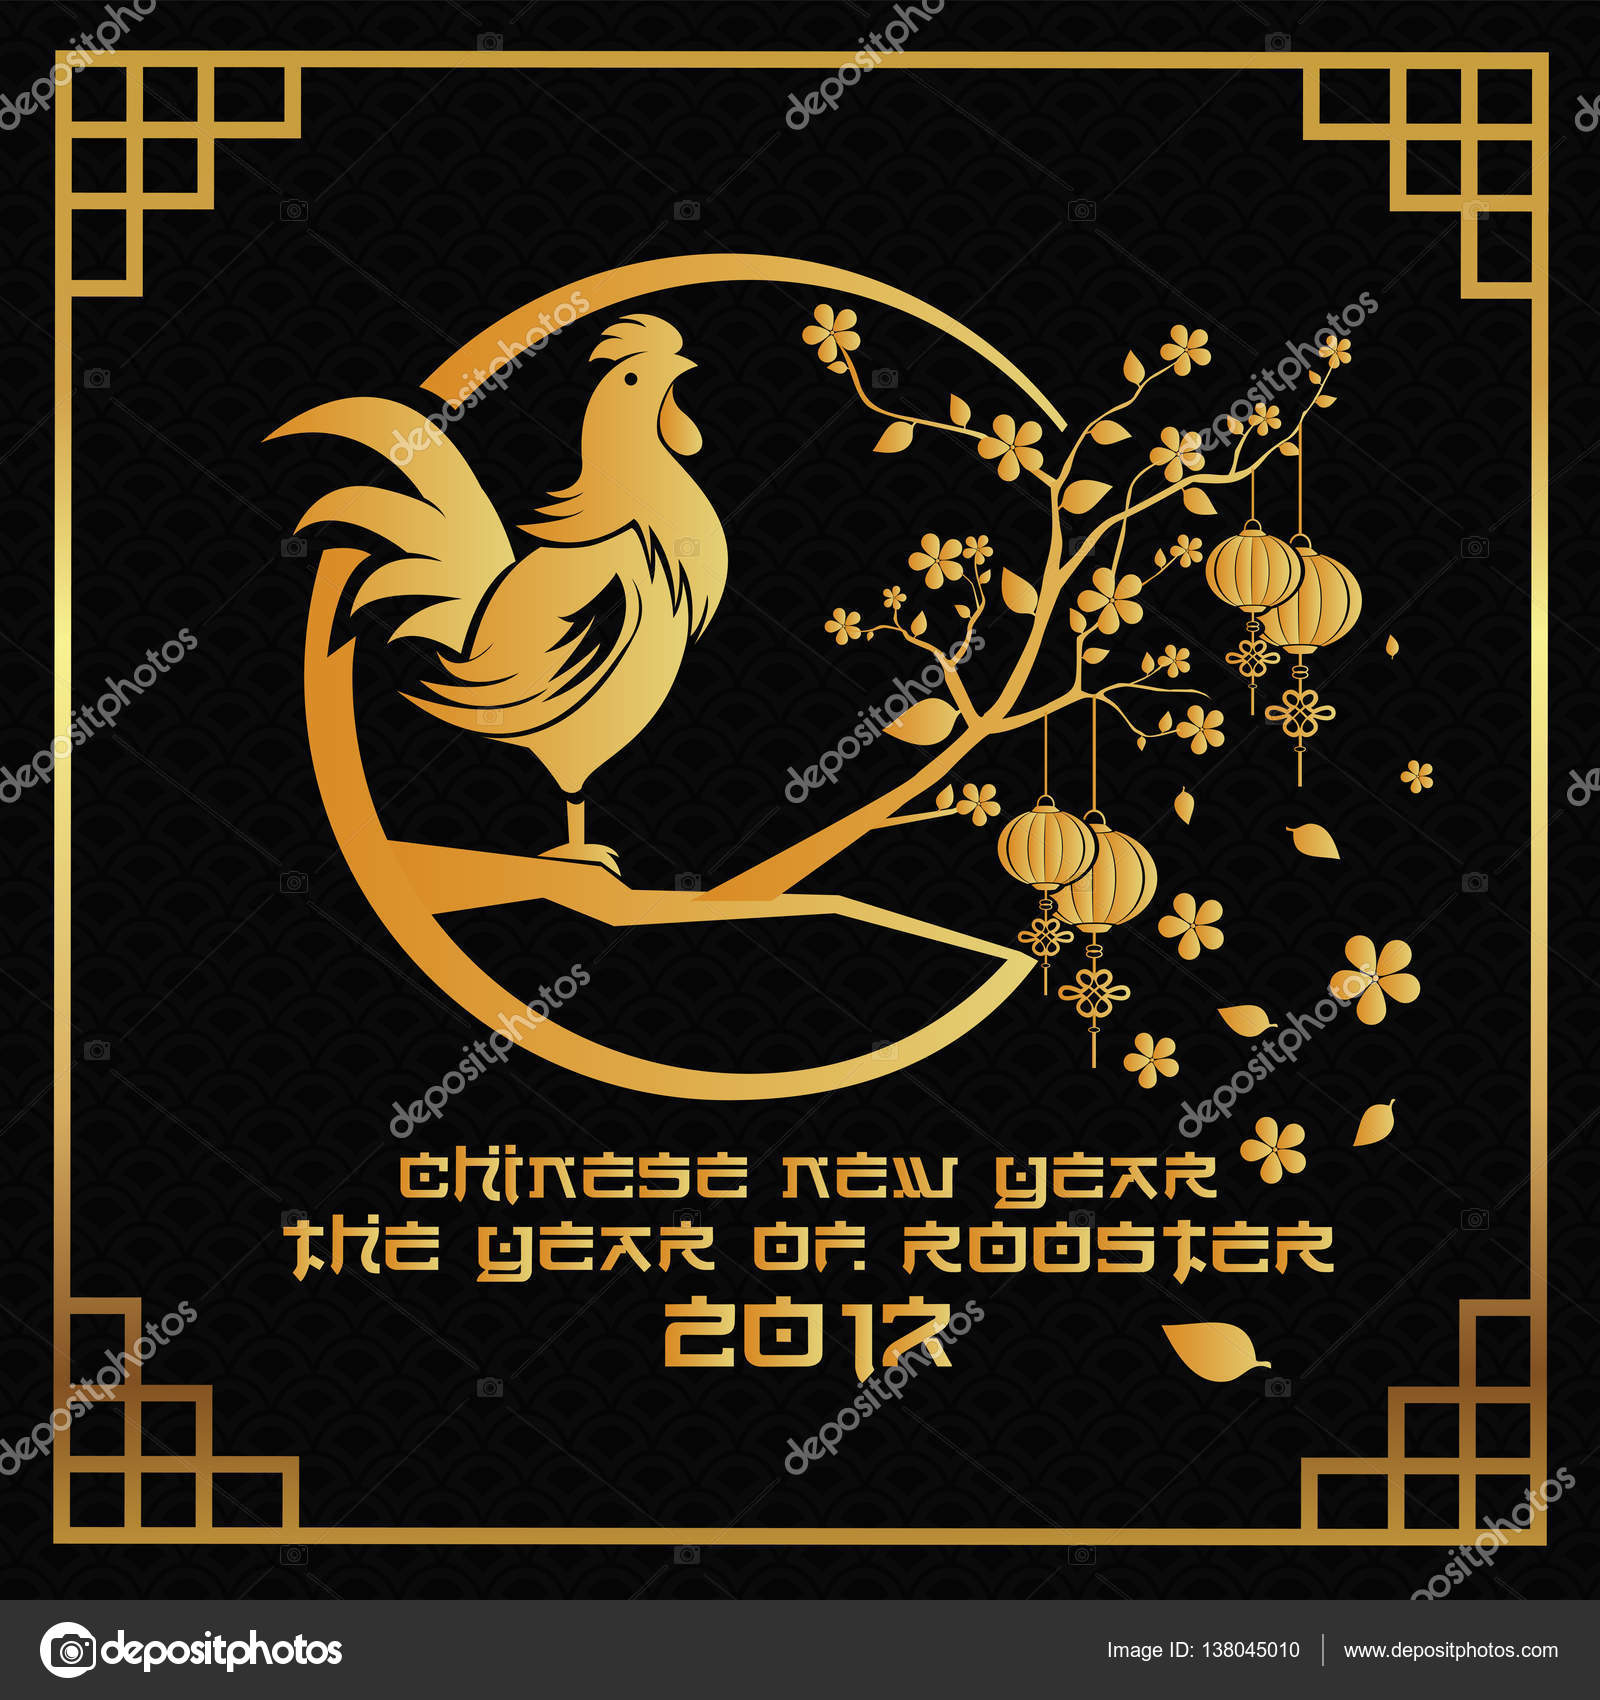 elegant luxury black and gold chinese new year 2017 rooster year card design suitable for